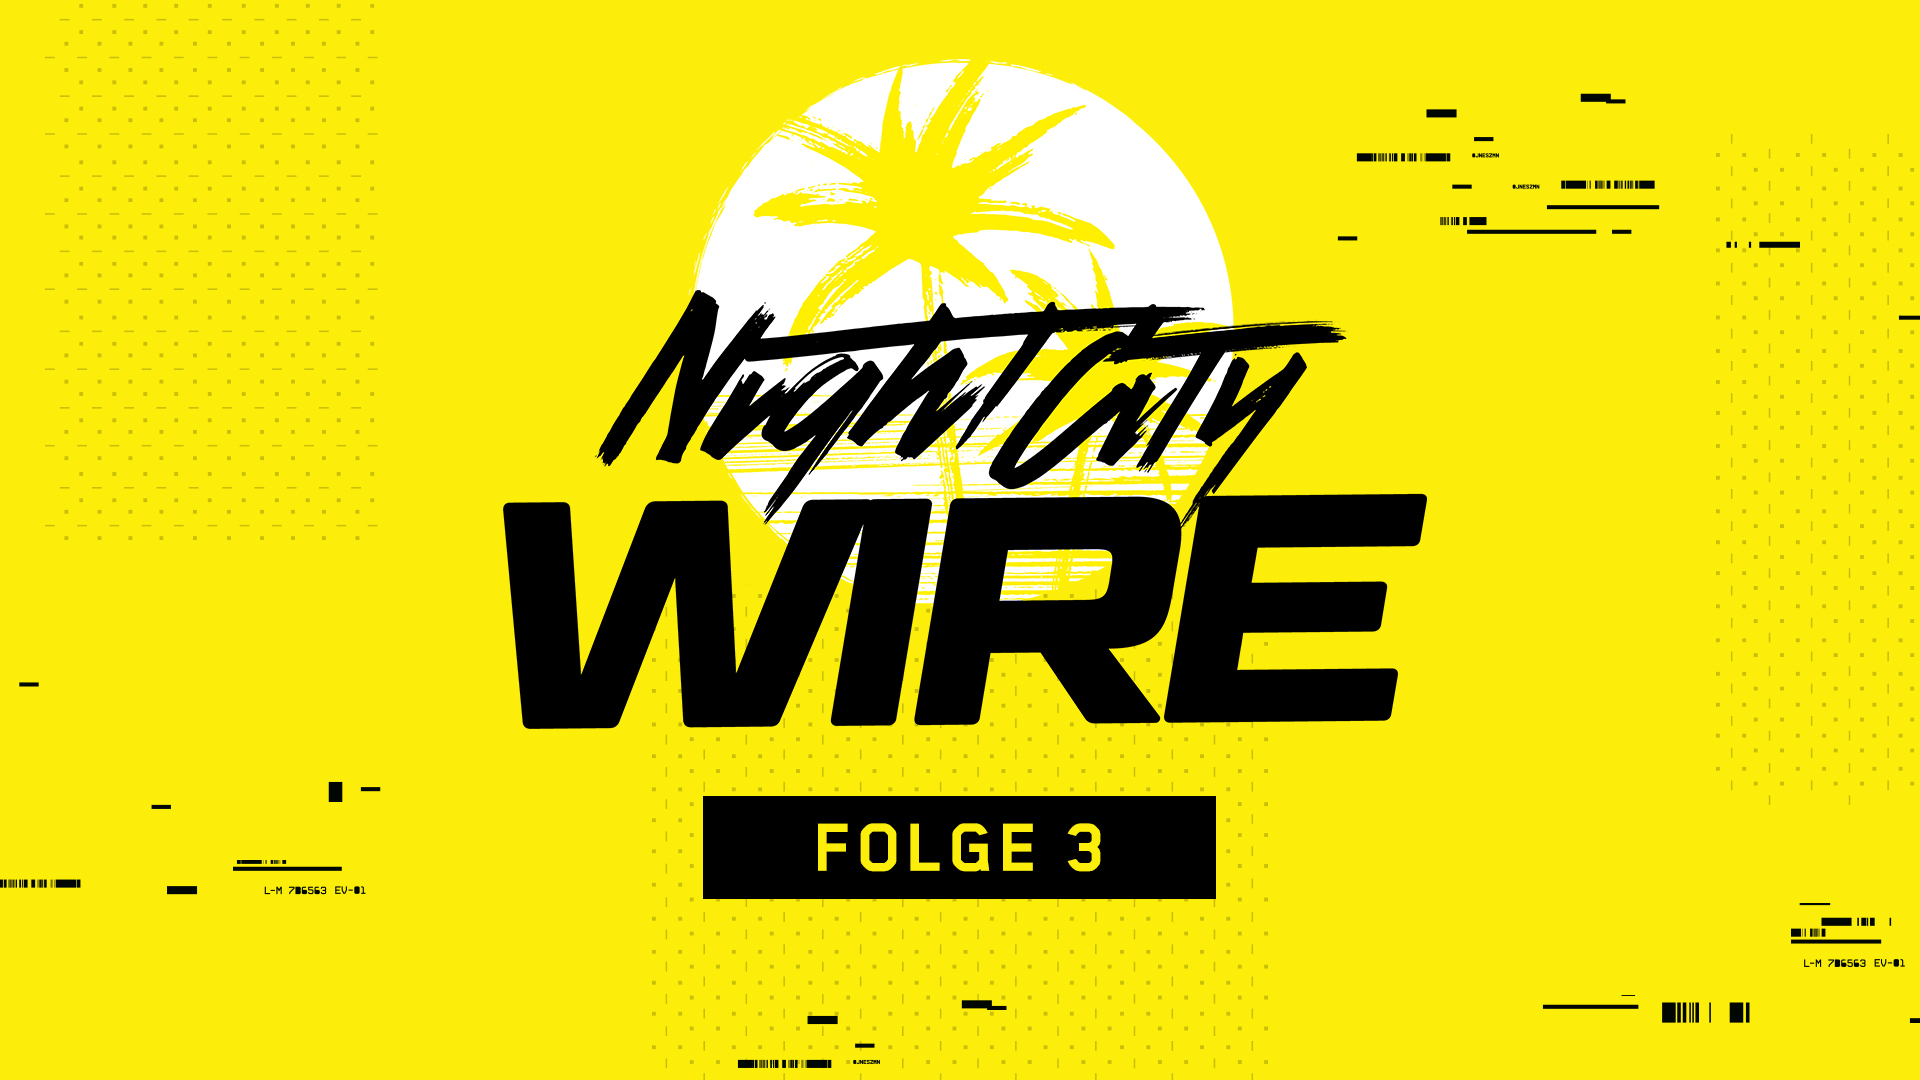 NC_Wire_Episode_3_1920x1080_DE.jpg